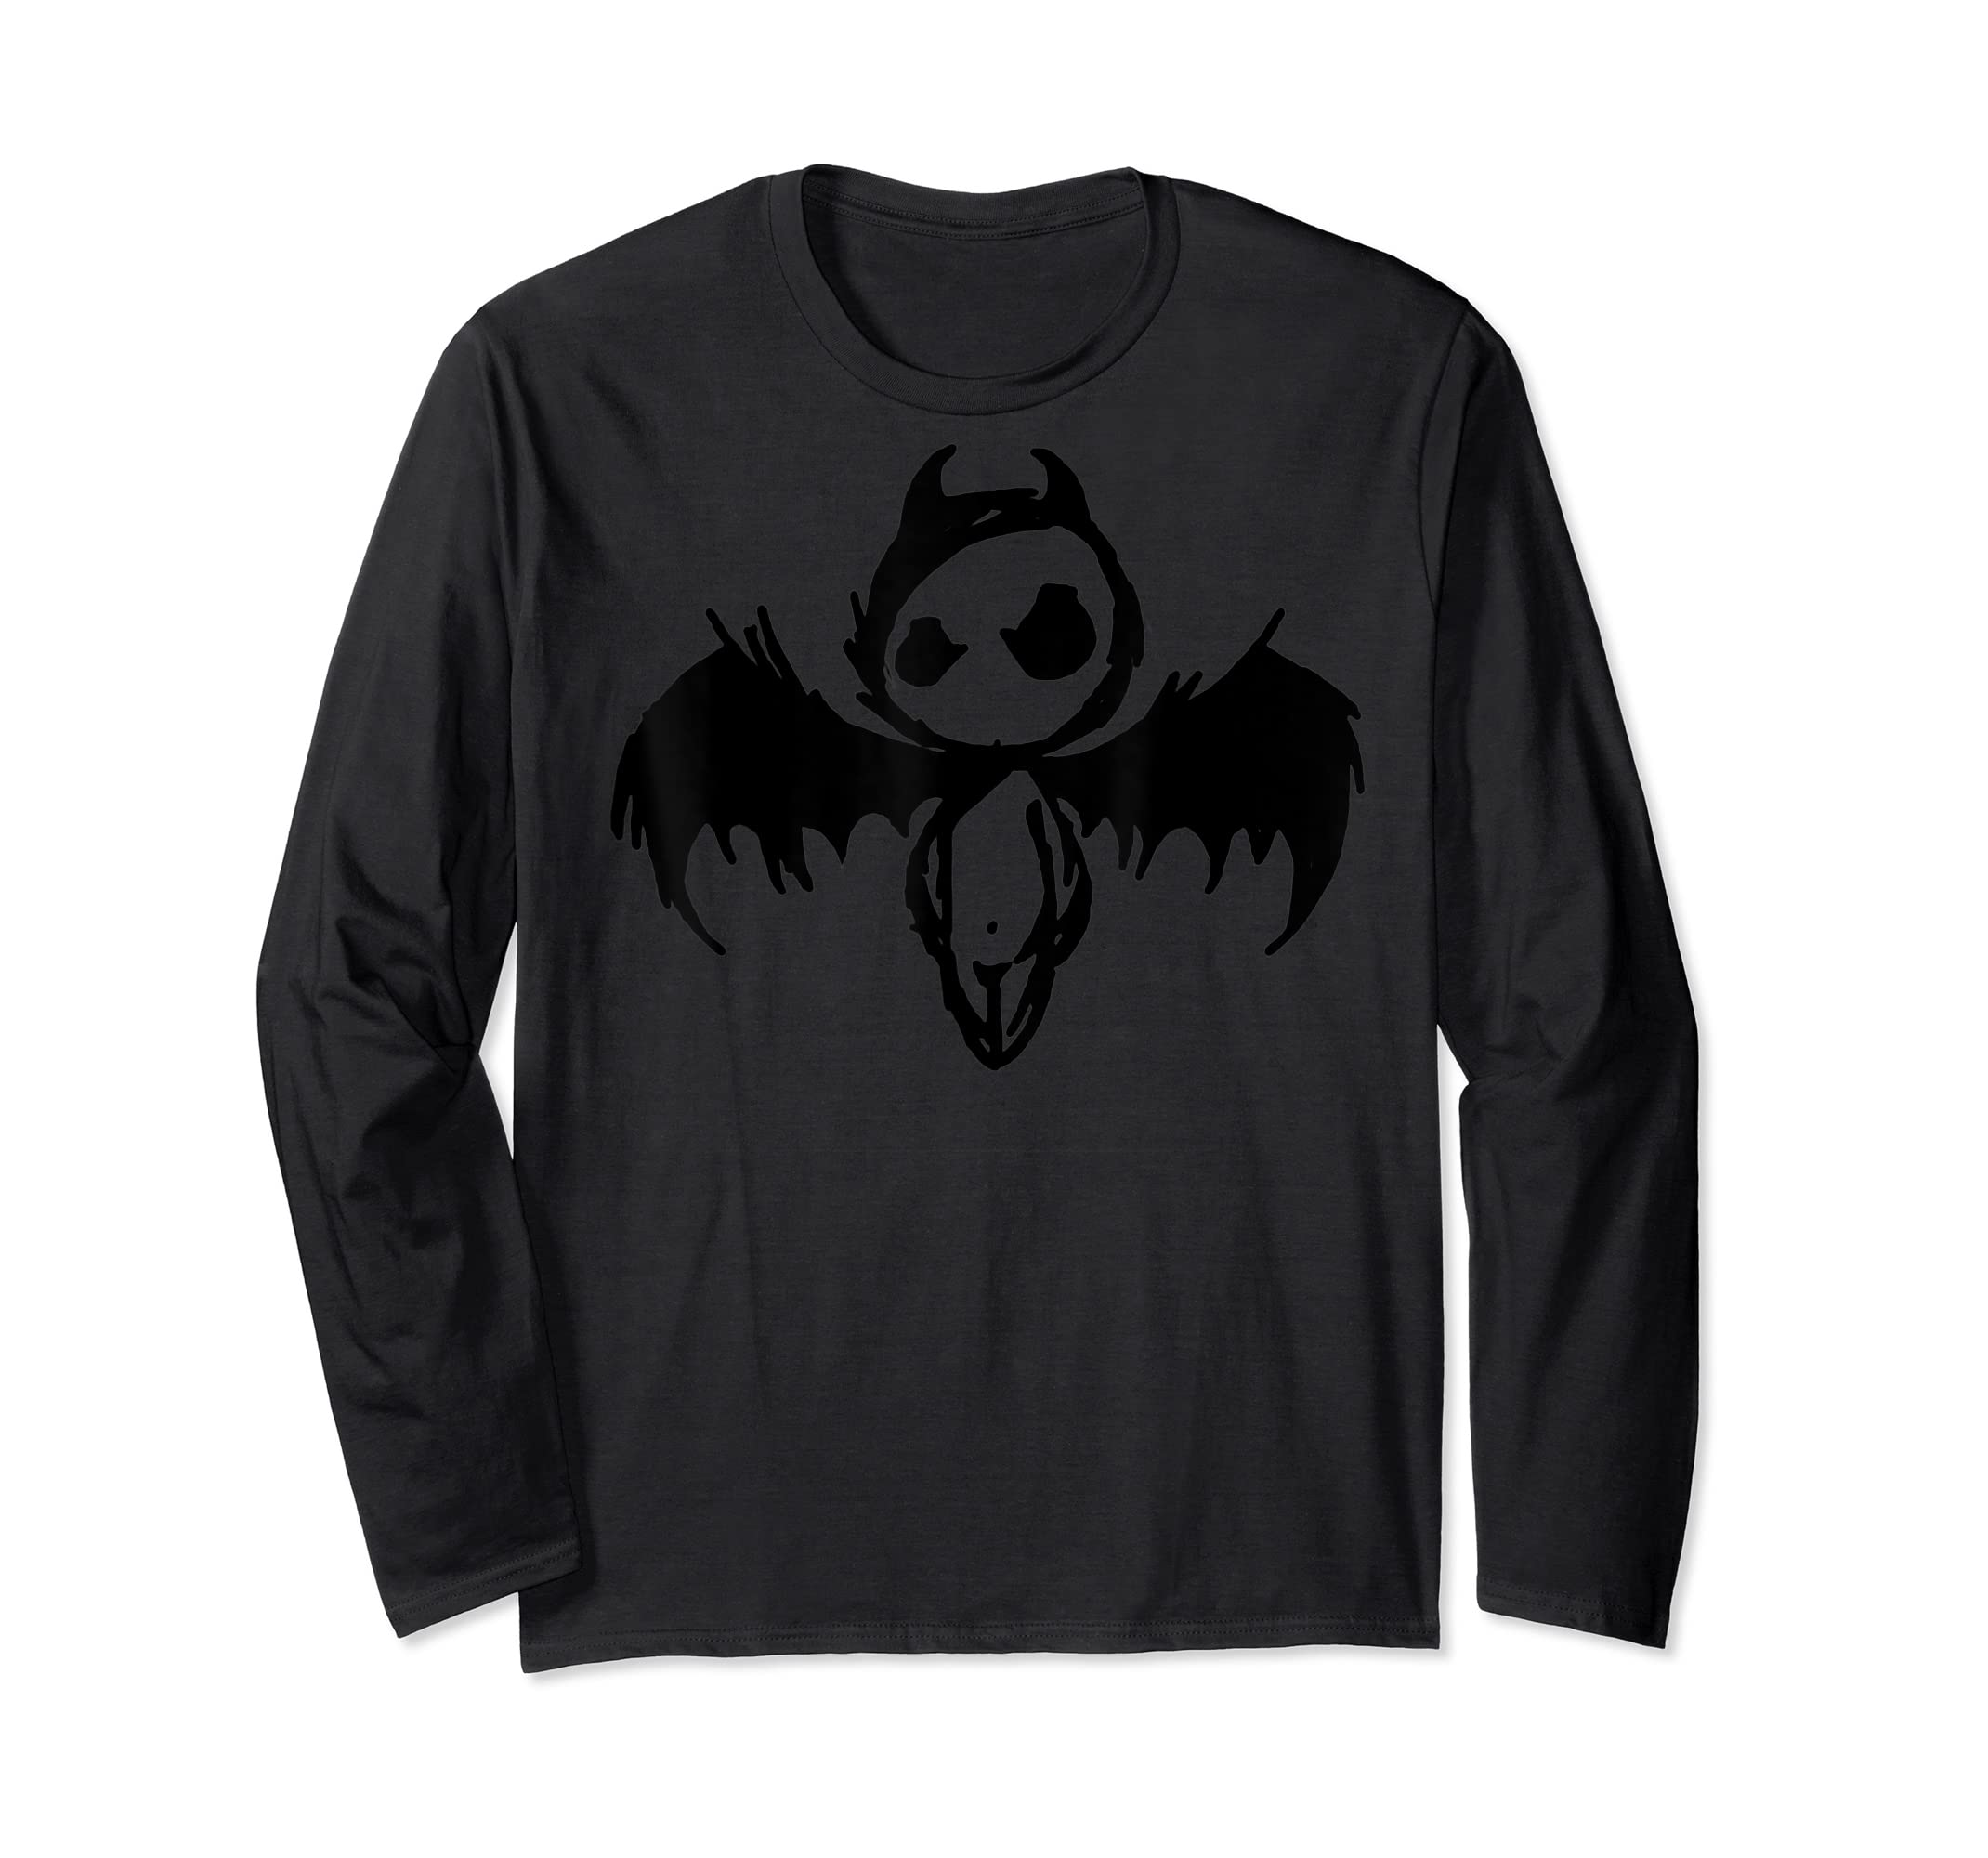 Cute Demon Vintage Couple Matching Halloween Party Costume  T-Shirt-Long Sleeve-Black